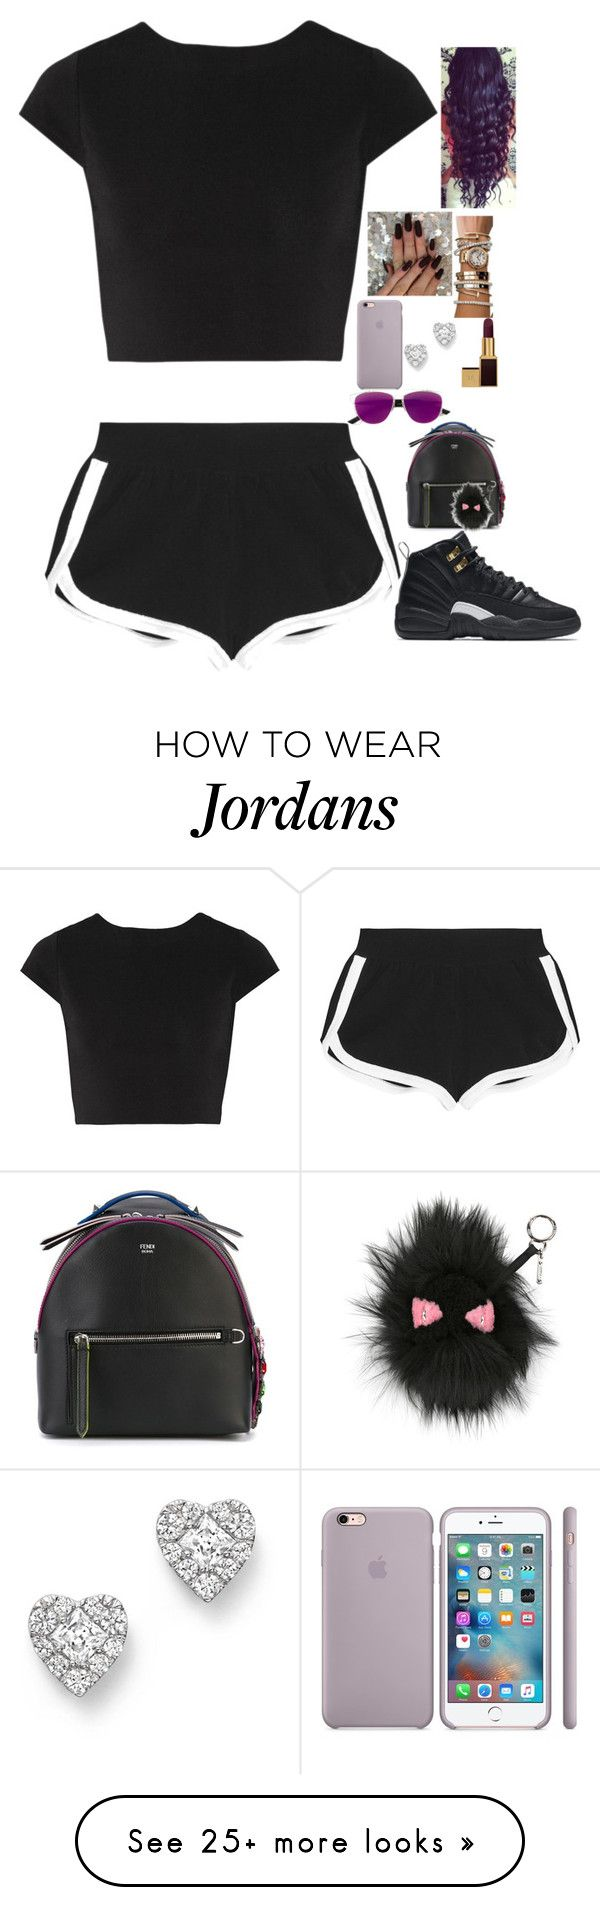 """Untitled #315"" by madeforfashion on Polyvore featuring Alice + Olivia, Fendi, NIKE, Rolex, Bloomingdale's, Christian Dior and Tom Ford"